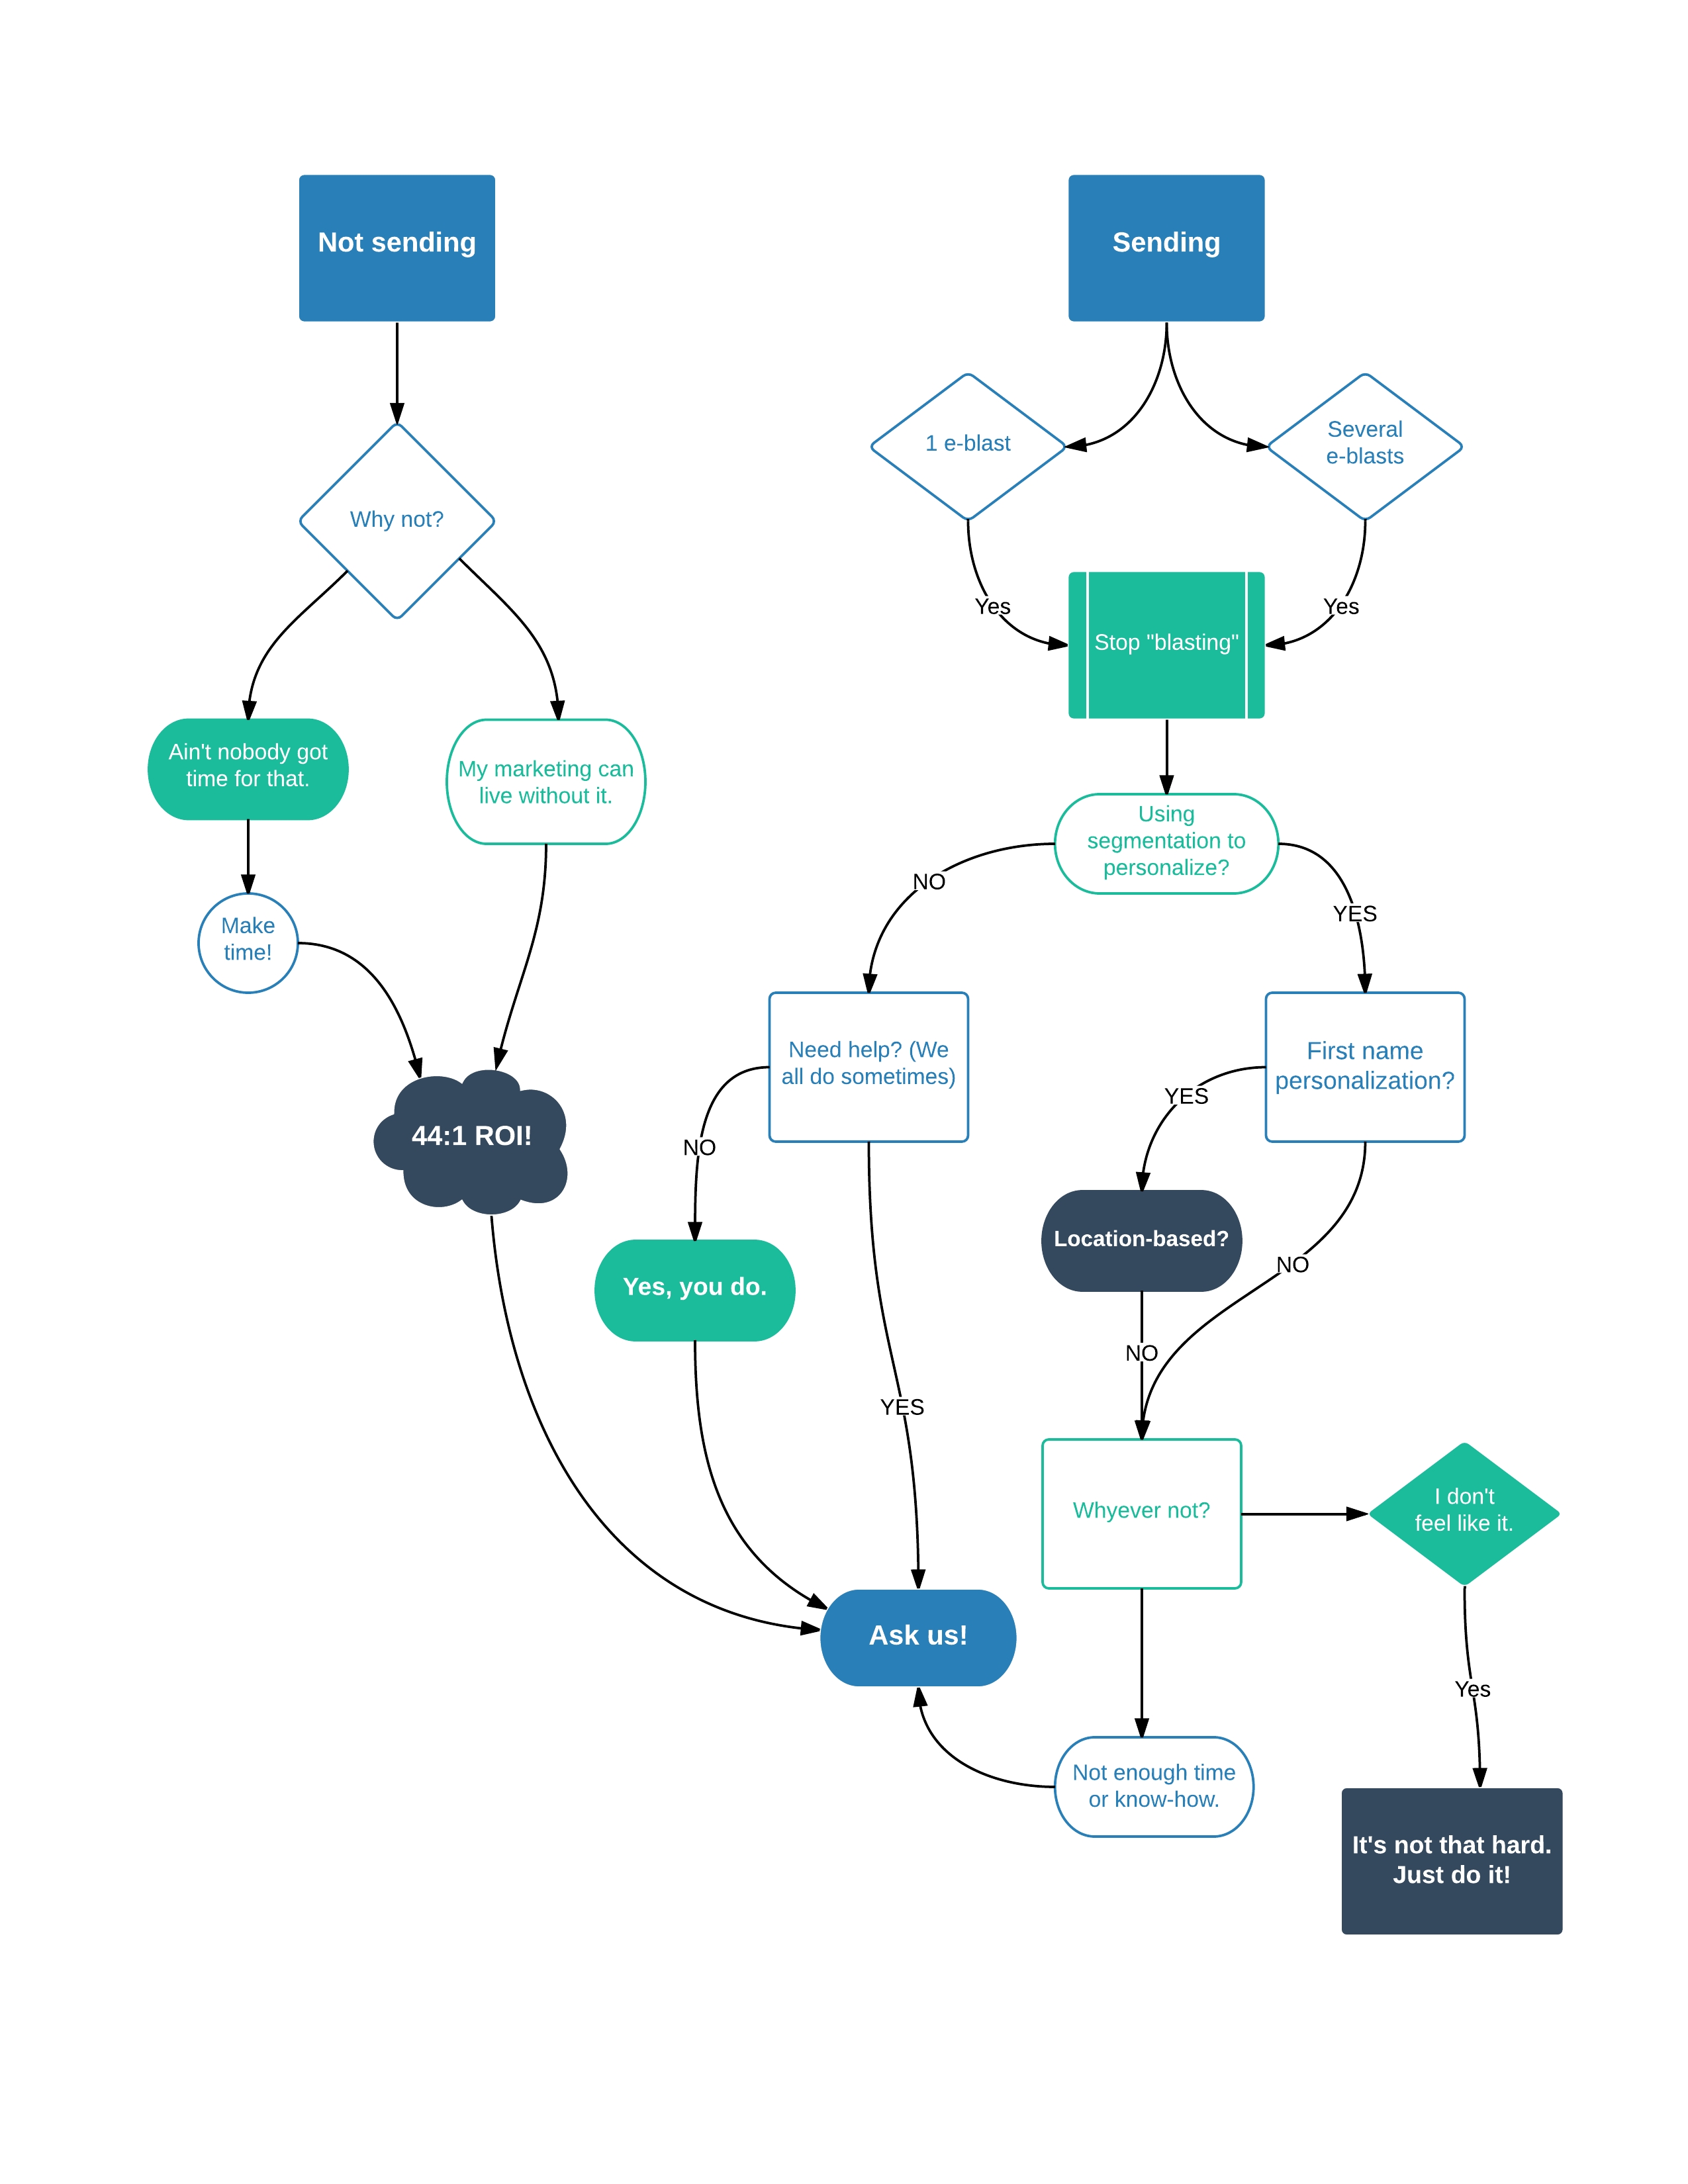 Ask a flowchart hows my email marketing this flowchart will tell you how your email marketing is doingrta nvjuhfo Choice Image